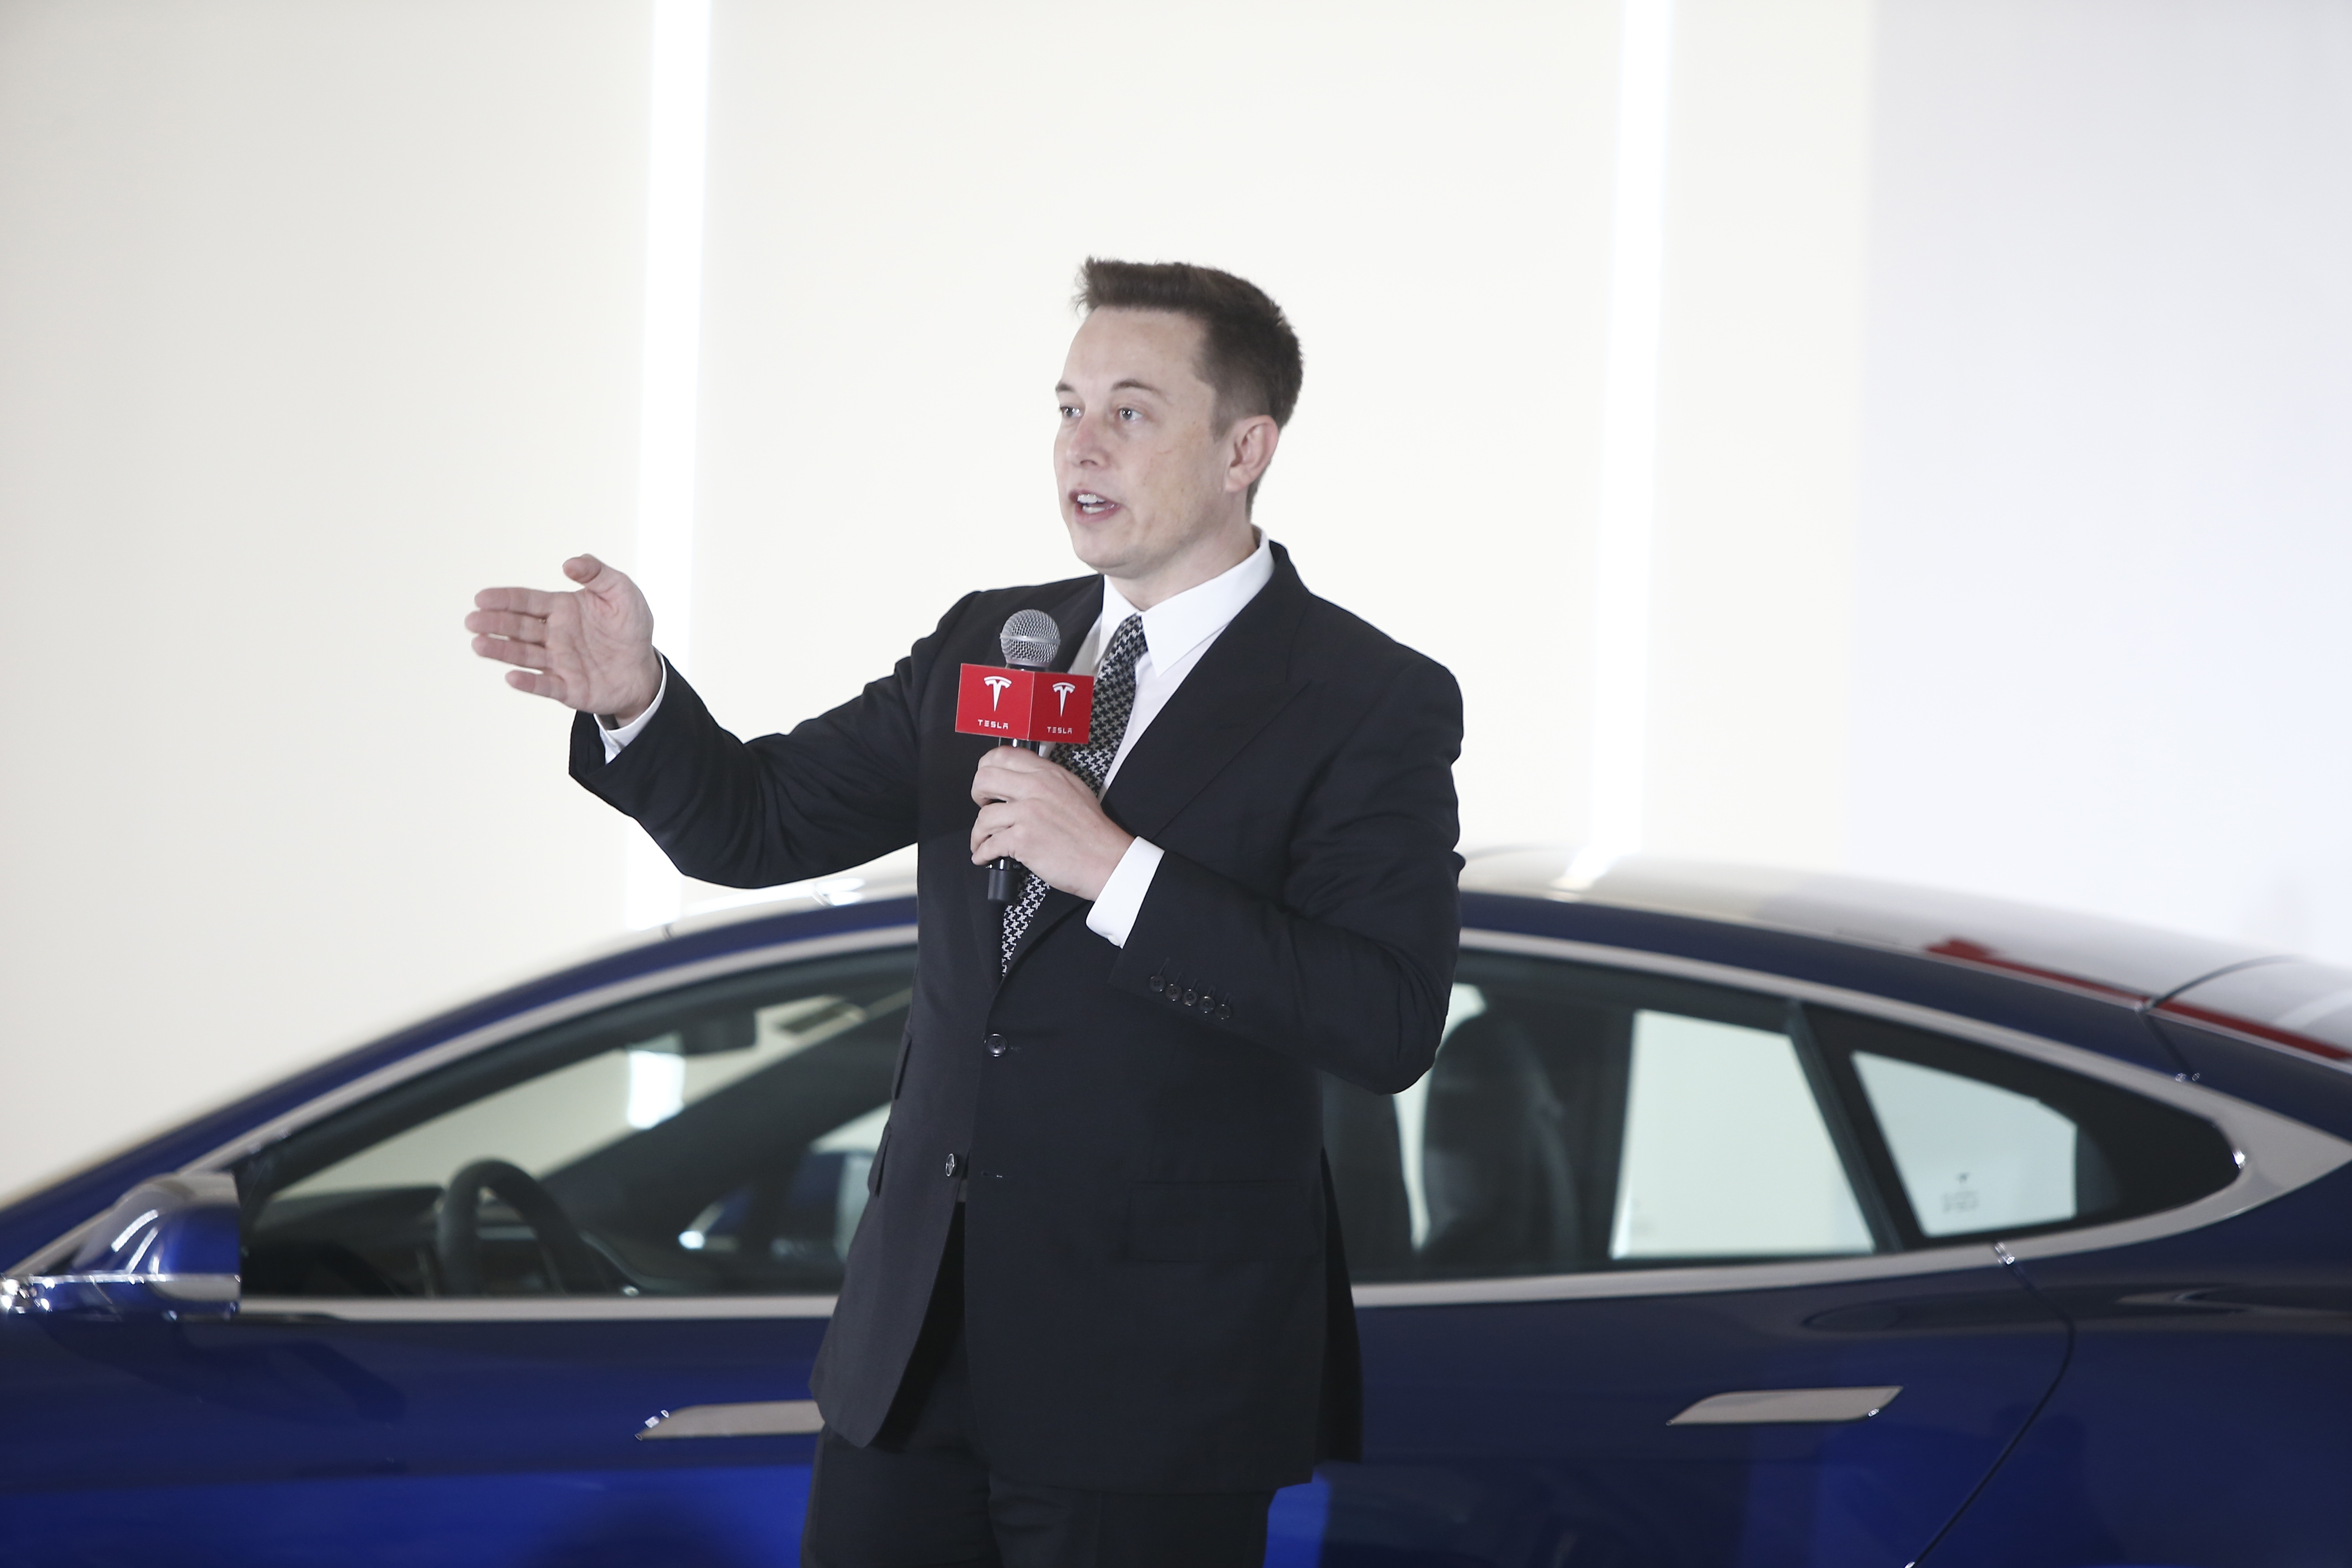 Musk is like a real life Bruce Wayne, but we have no idea what his superhero alter ego is...yet.